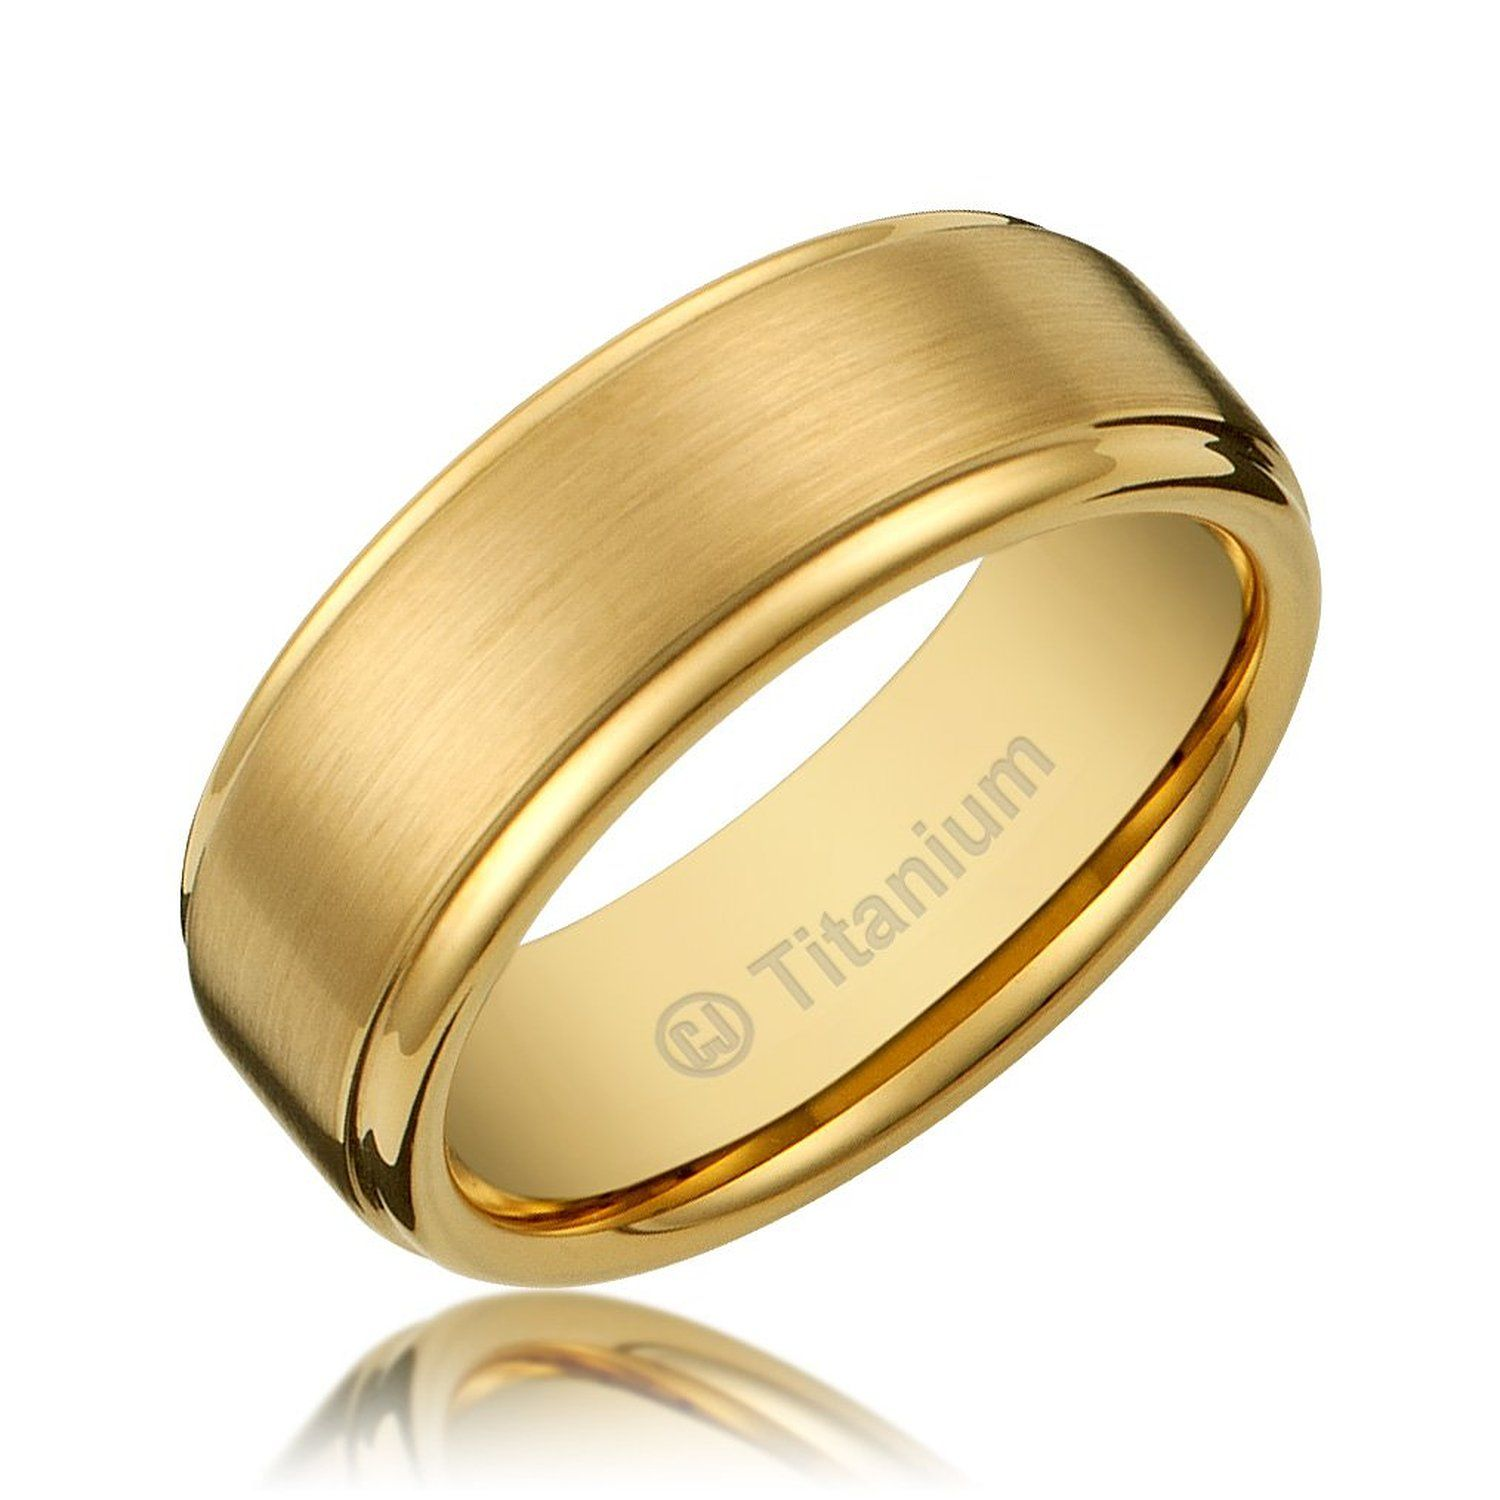 8MM Men's Titanium GoldPlated Ring Wedding Band with Flat